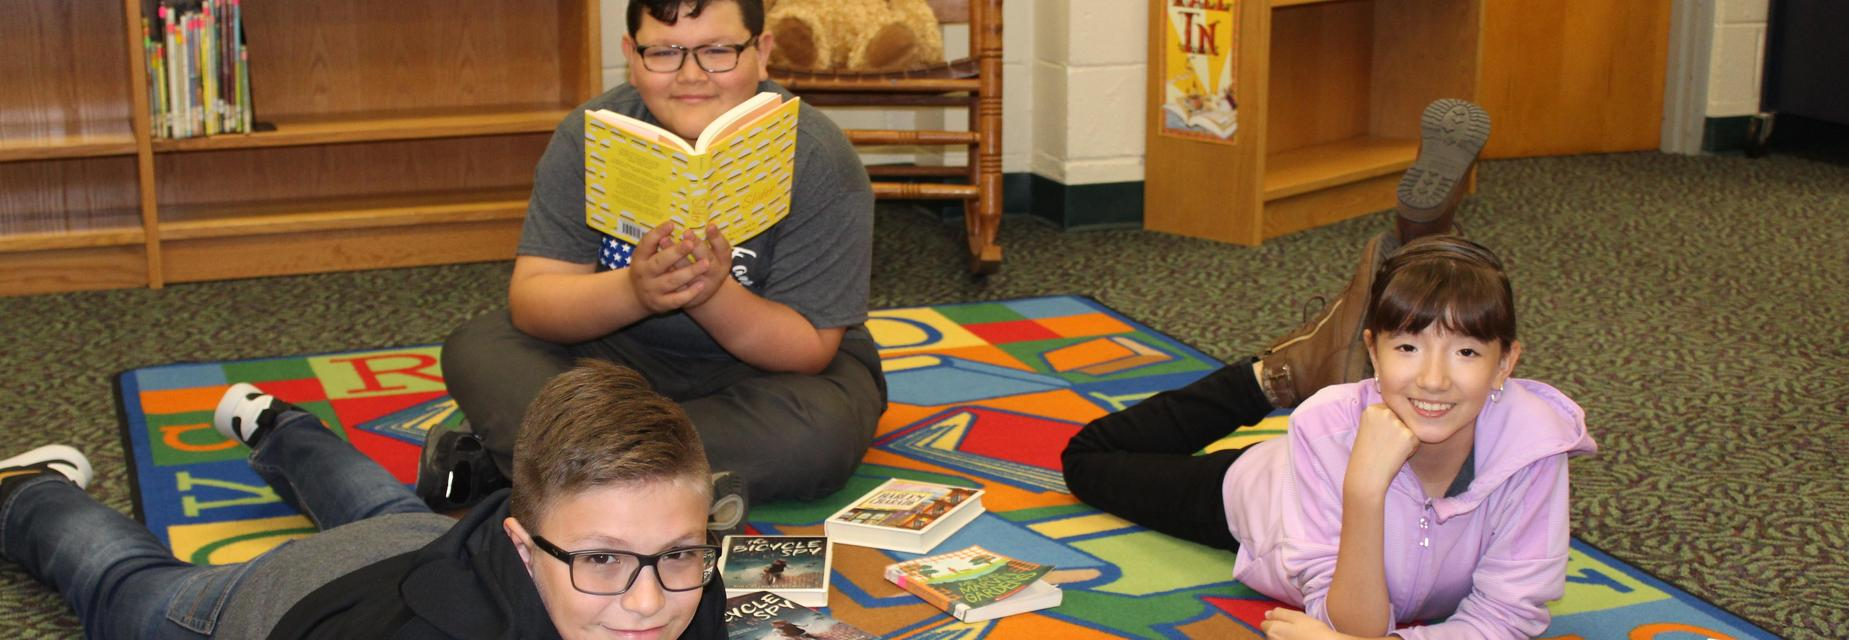 kids on carpet with books